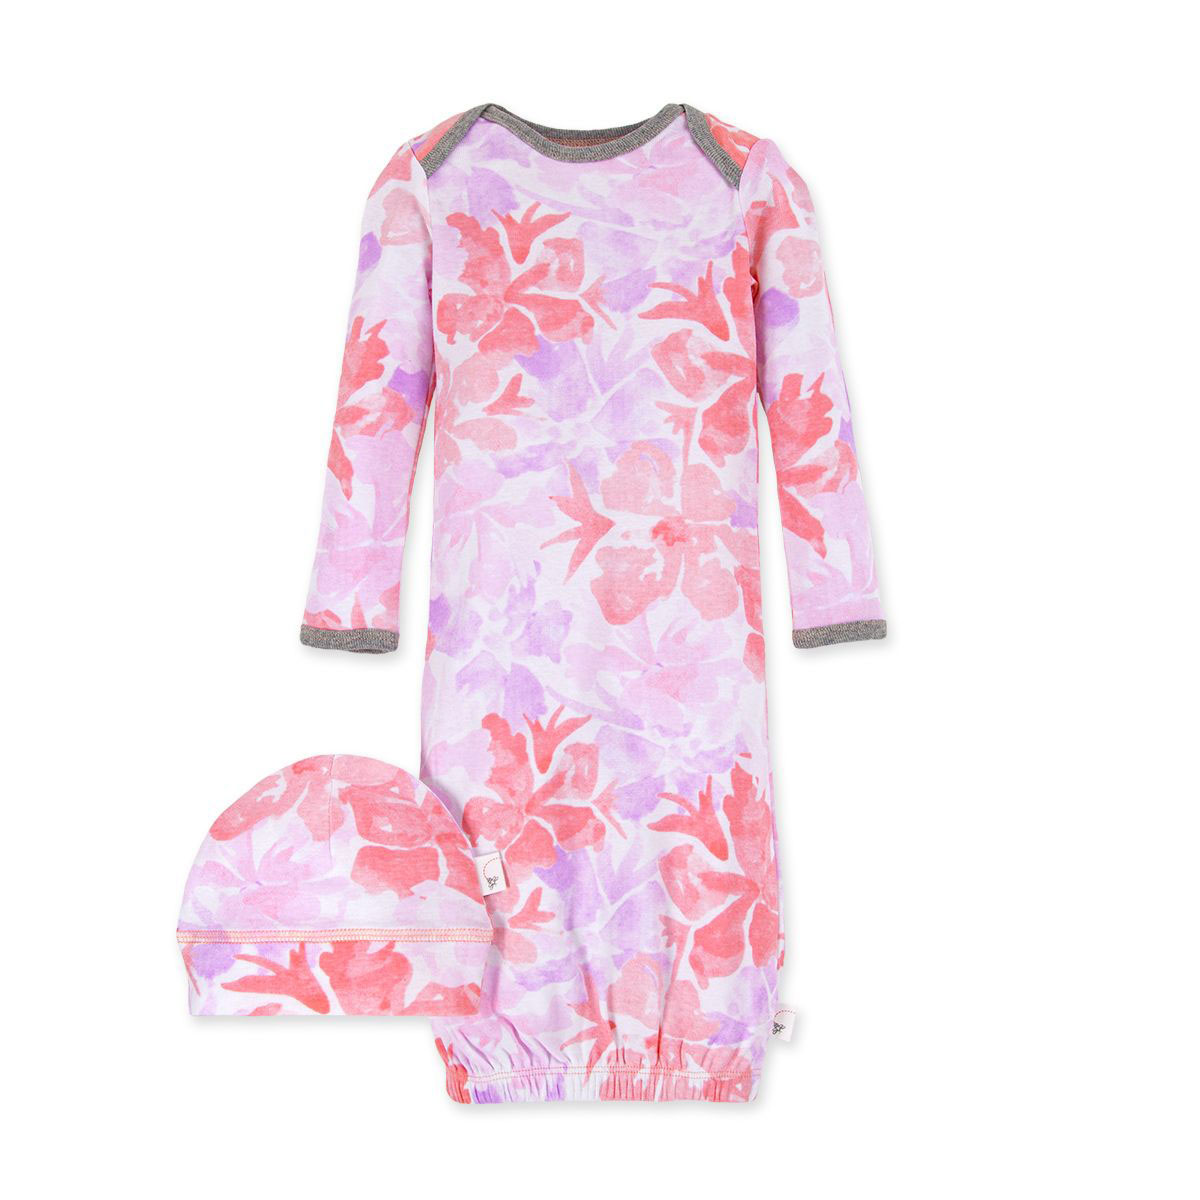 Market Miracles Organic Baby Gown & Cap Set